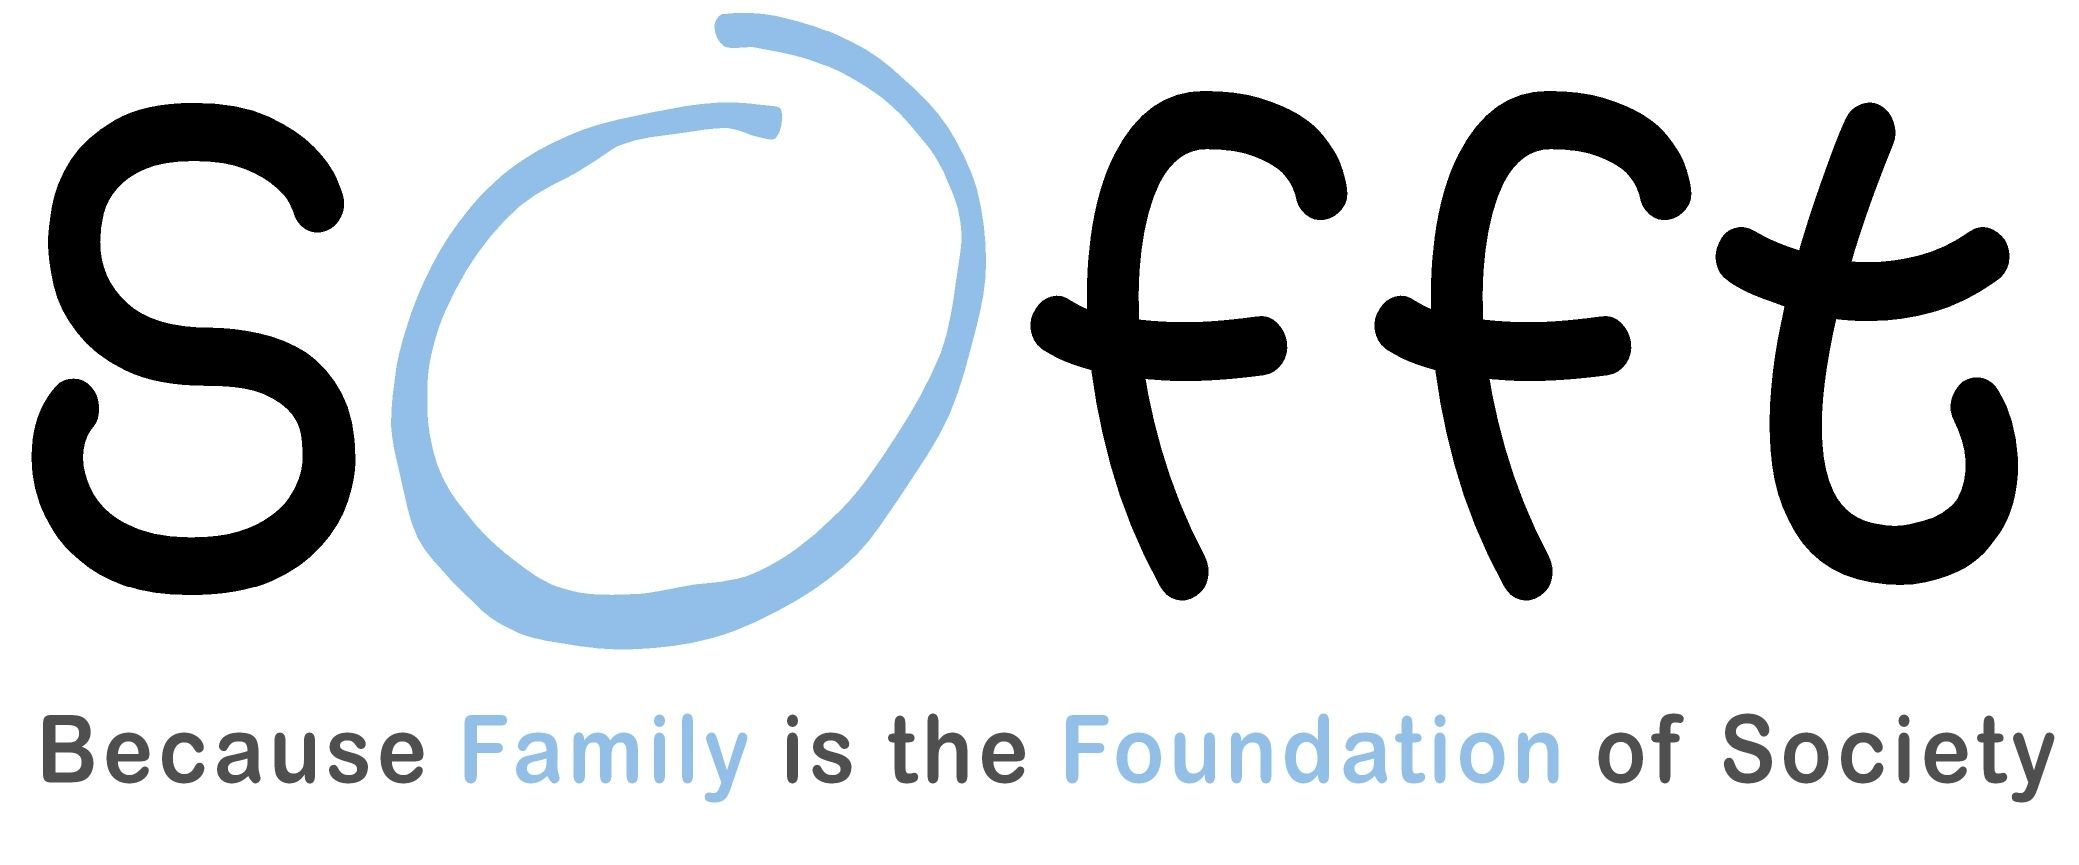 Save Our Families Foundation Thumb Image